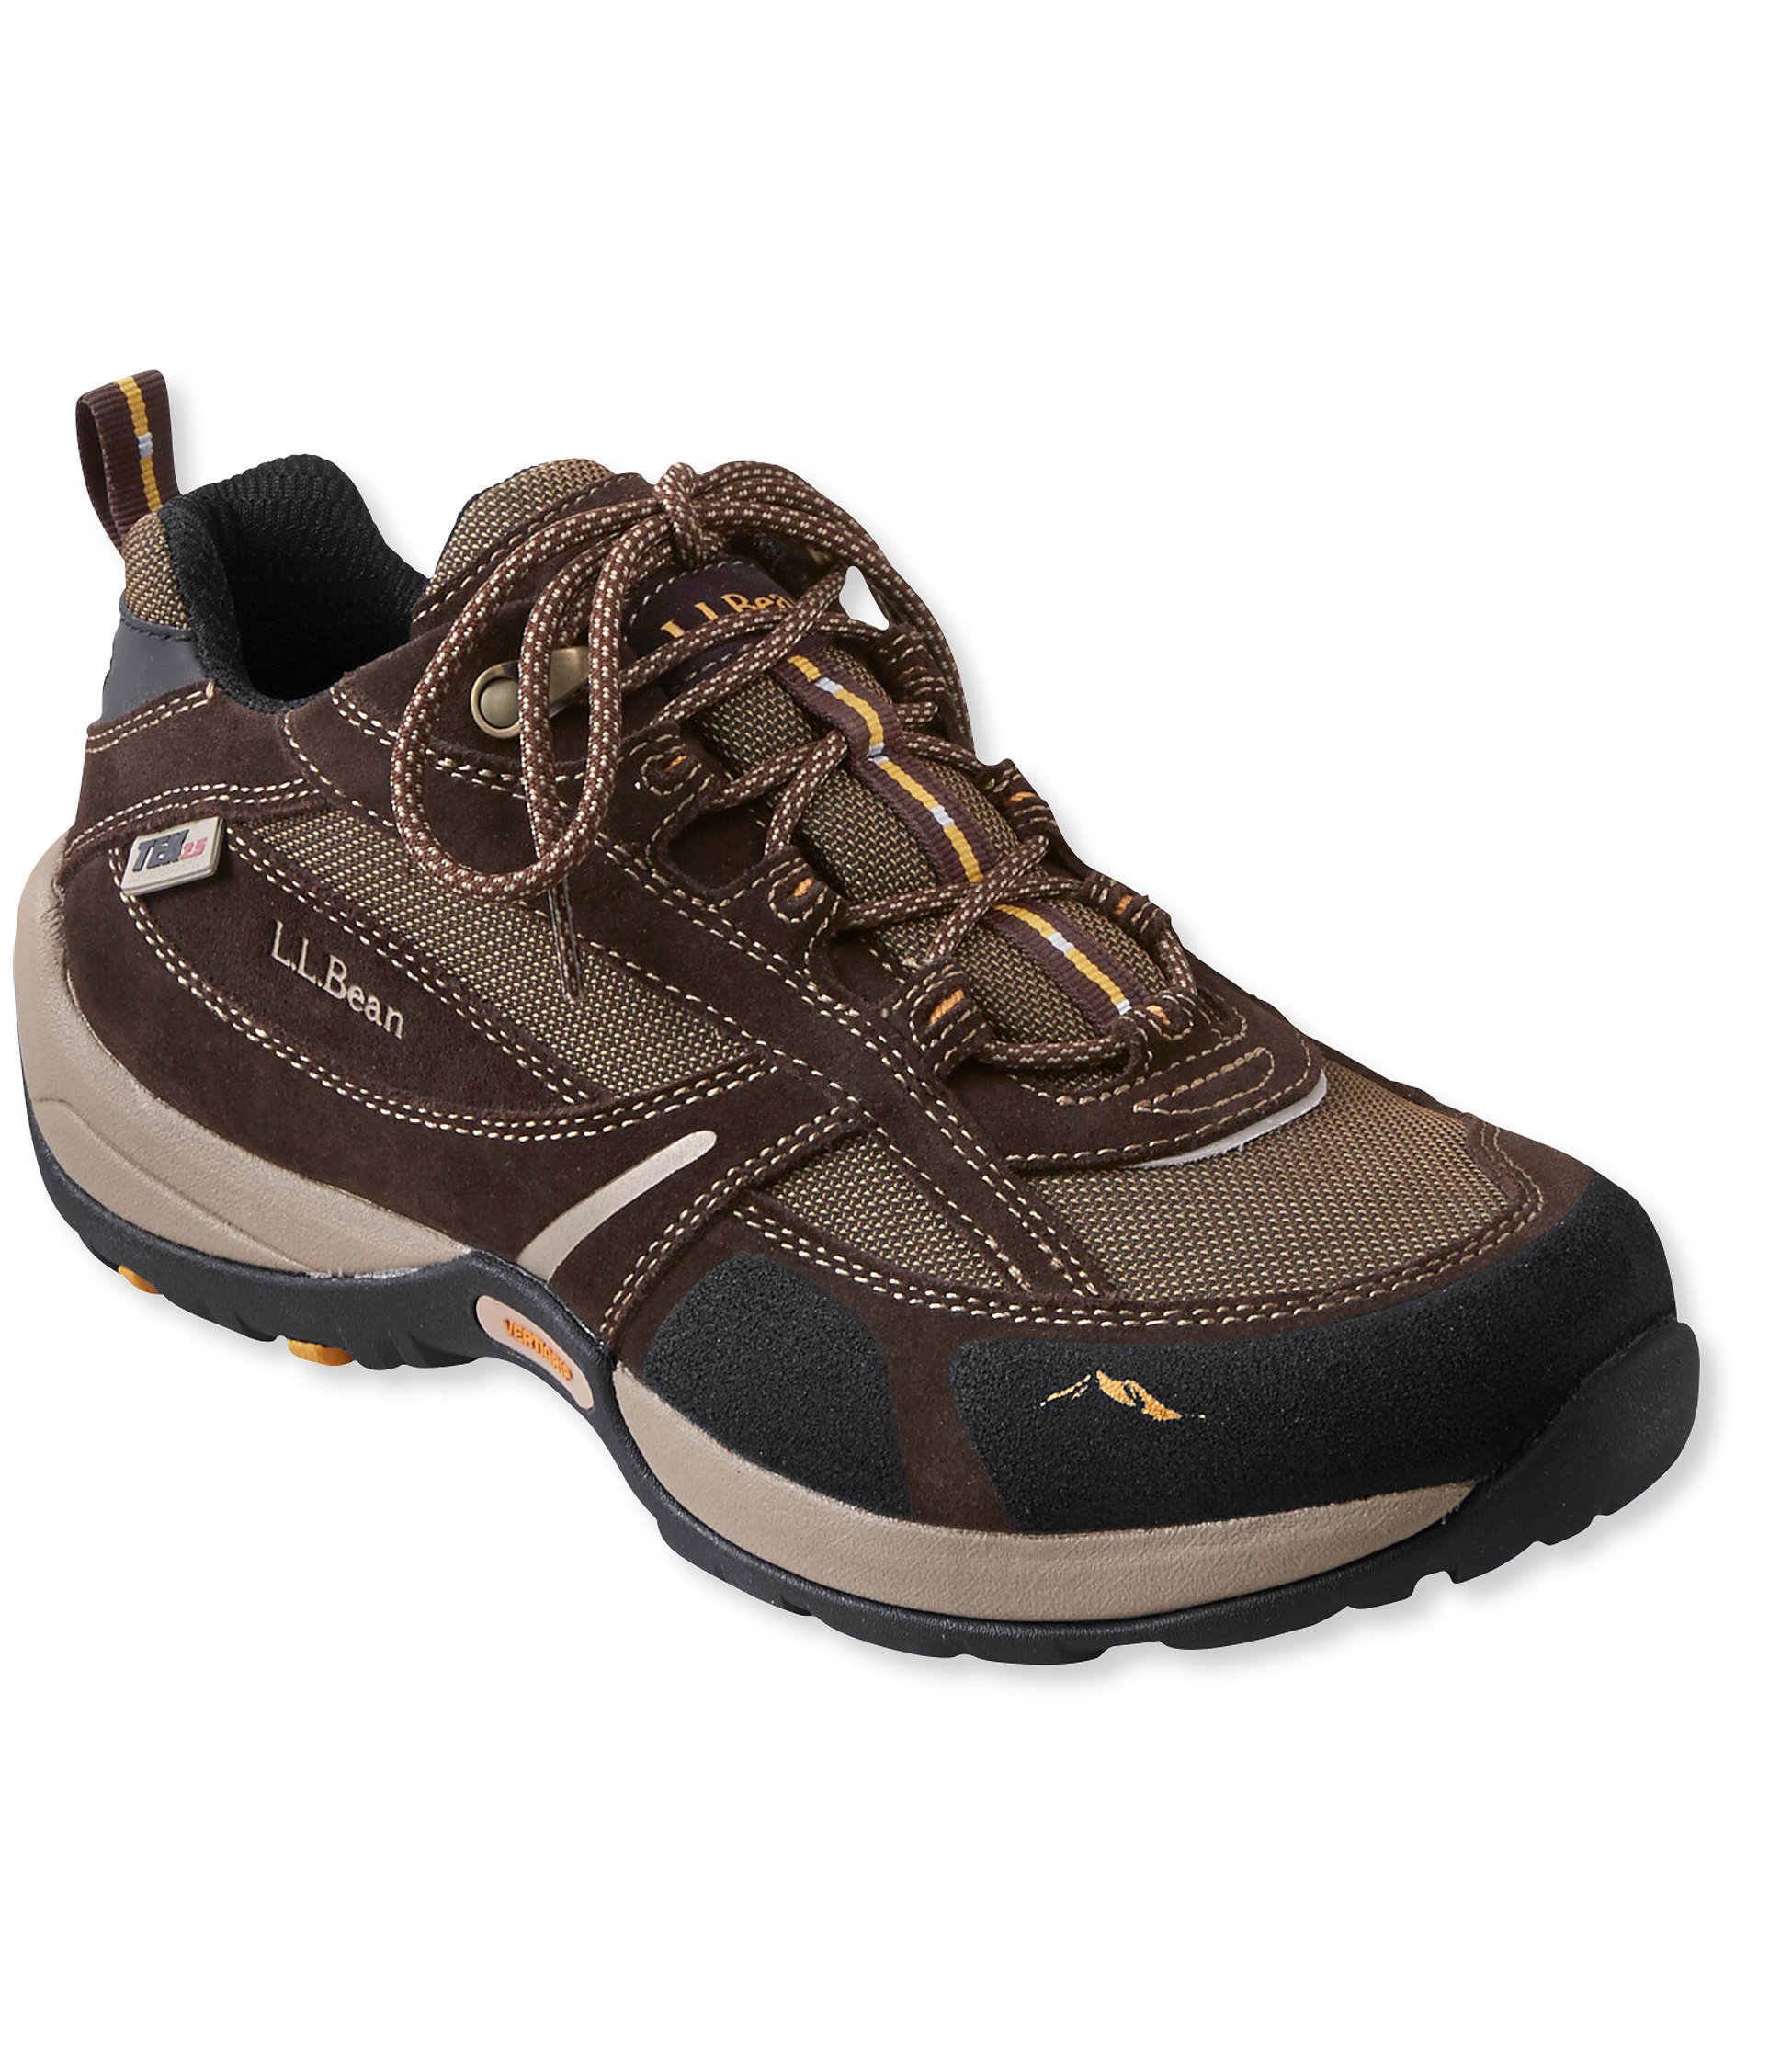 photo: L.L.Bean Bean's Waterproof Trail Model Hikers, Low-Cut trail shoe